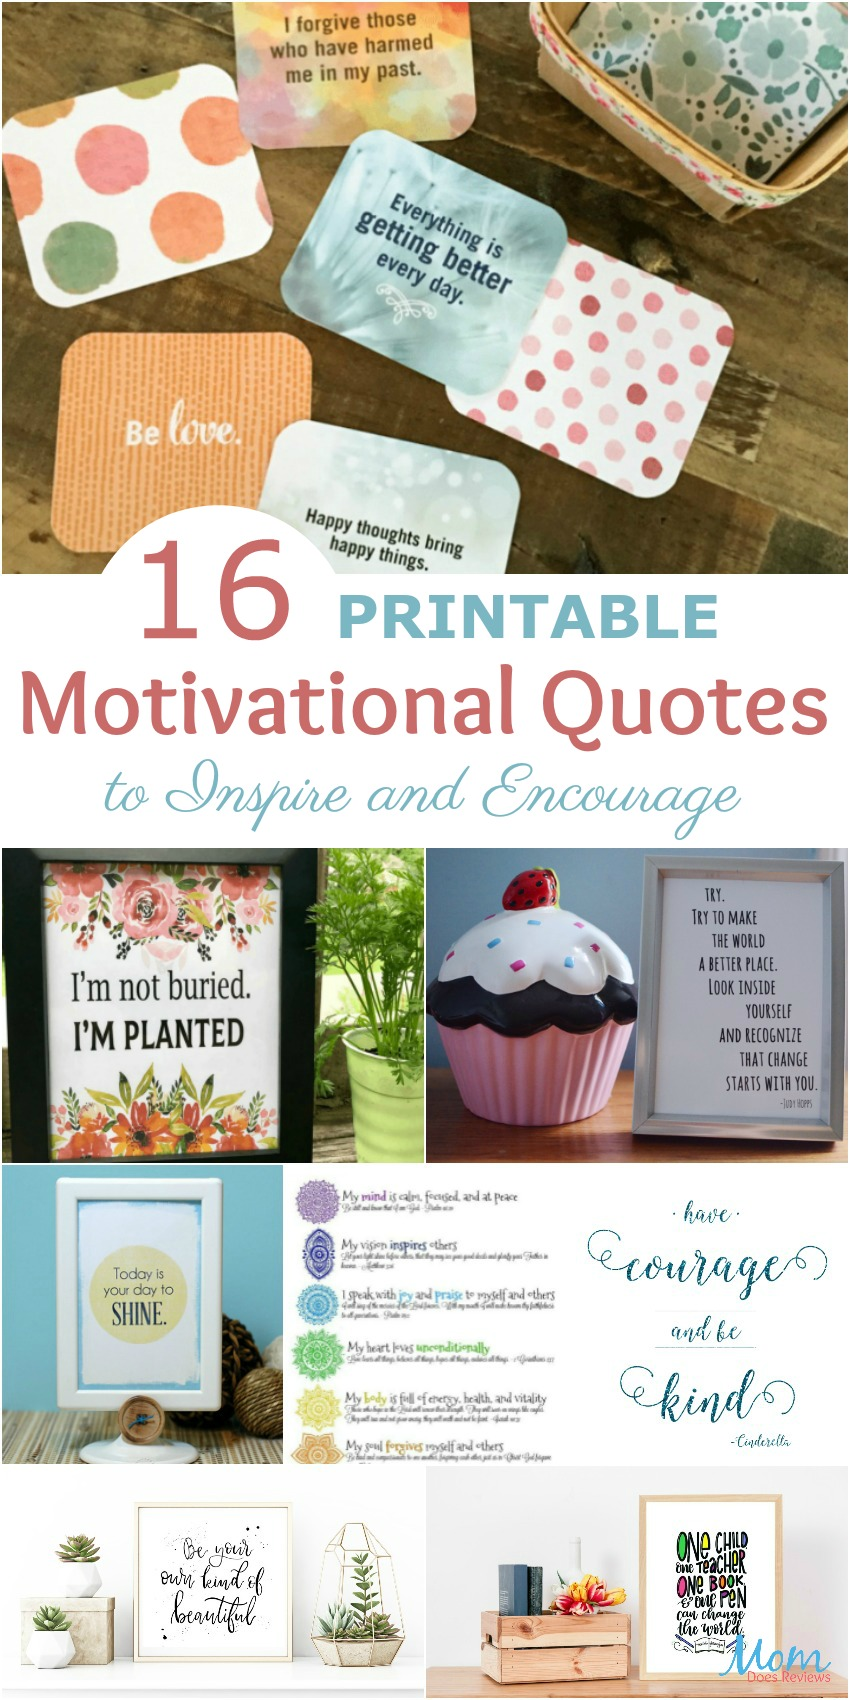 16 Printable Motivational Quotes to Inspire and Encourage #motivation #positivity #printables